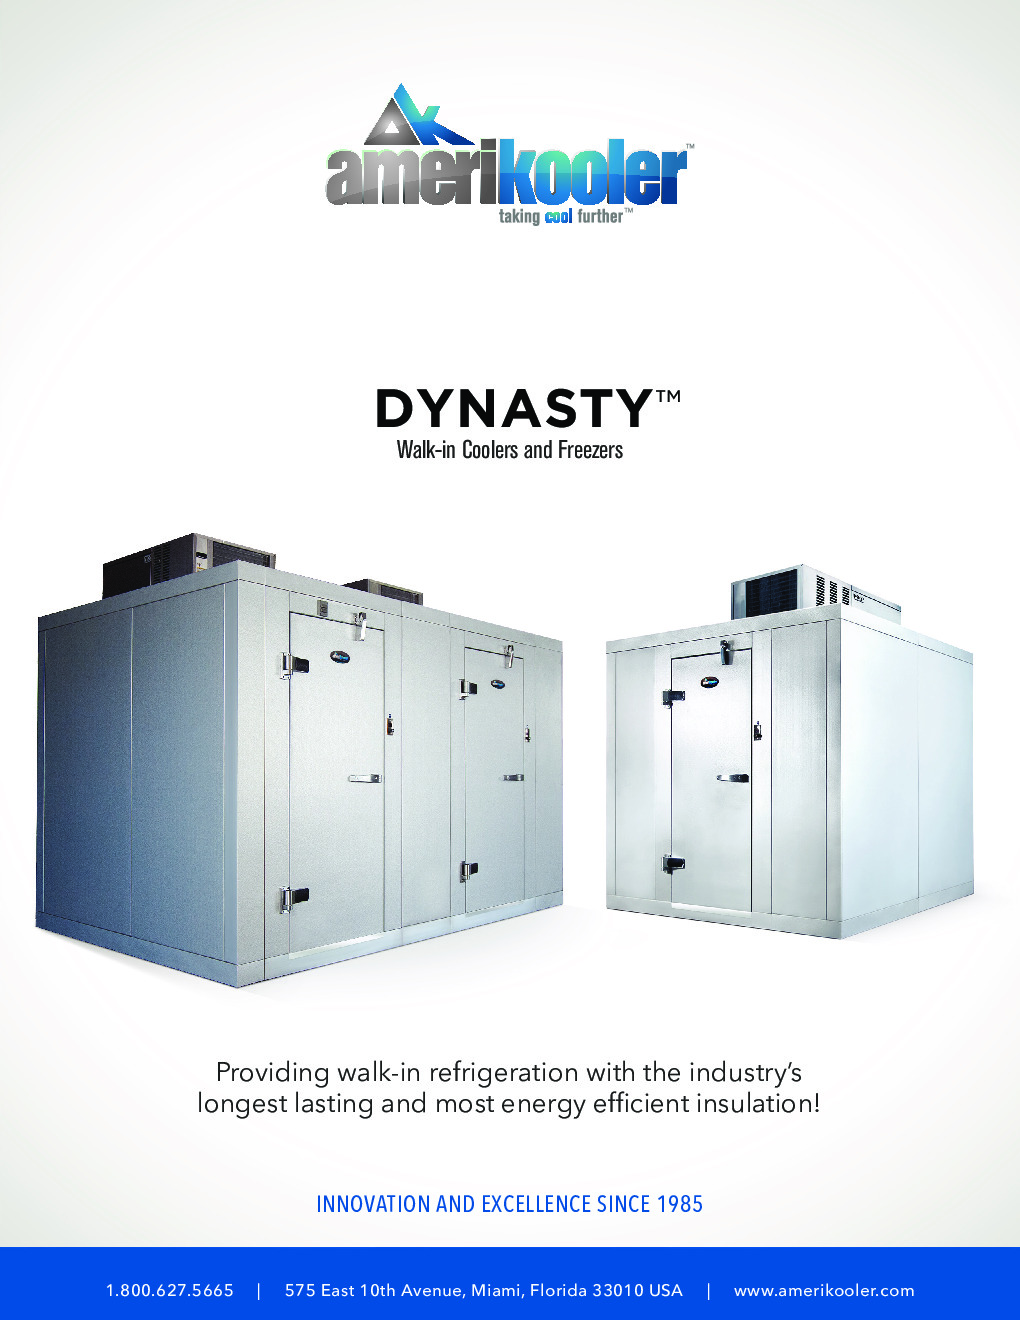 AmeriKooler DW092077N-9/11-RM 9' X 20' Walk-In Cooler, 11' L Cooler without Floor and 9' L Freezer, Remote